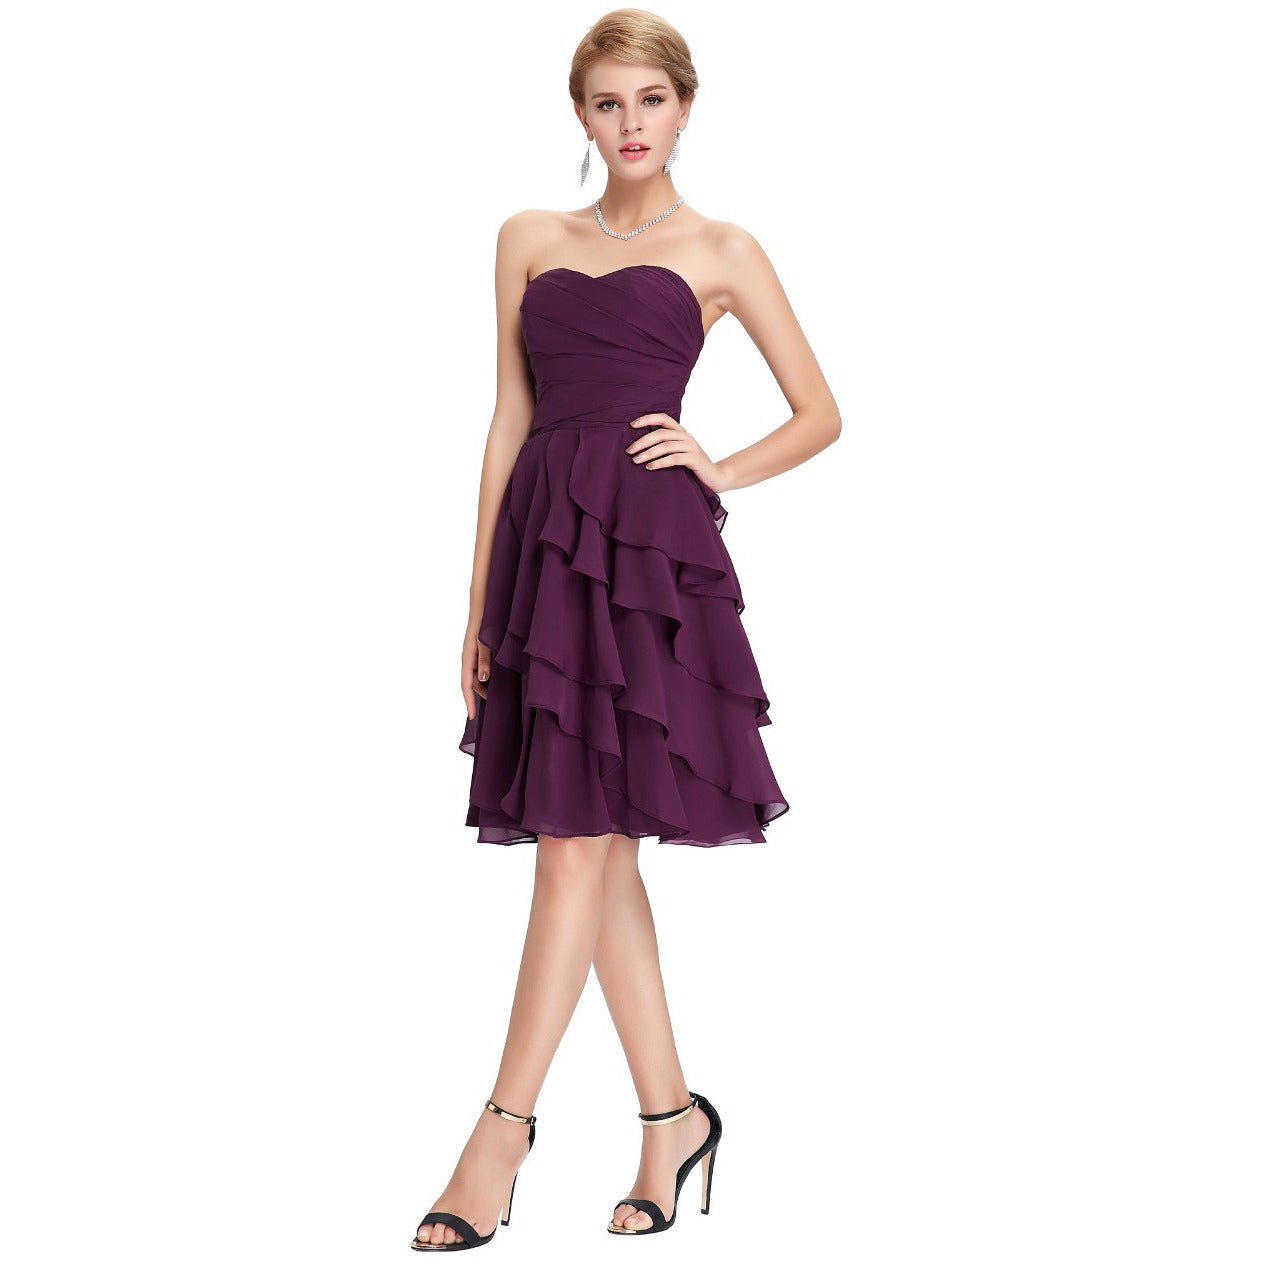 Grace Karin Chiffon Short Prom Dress